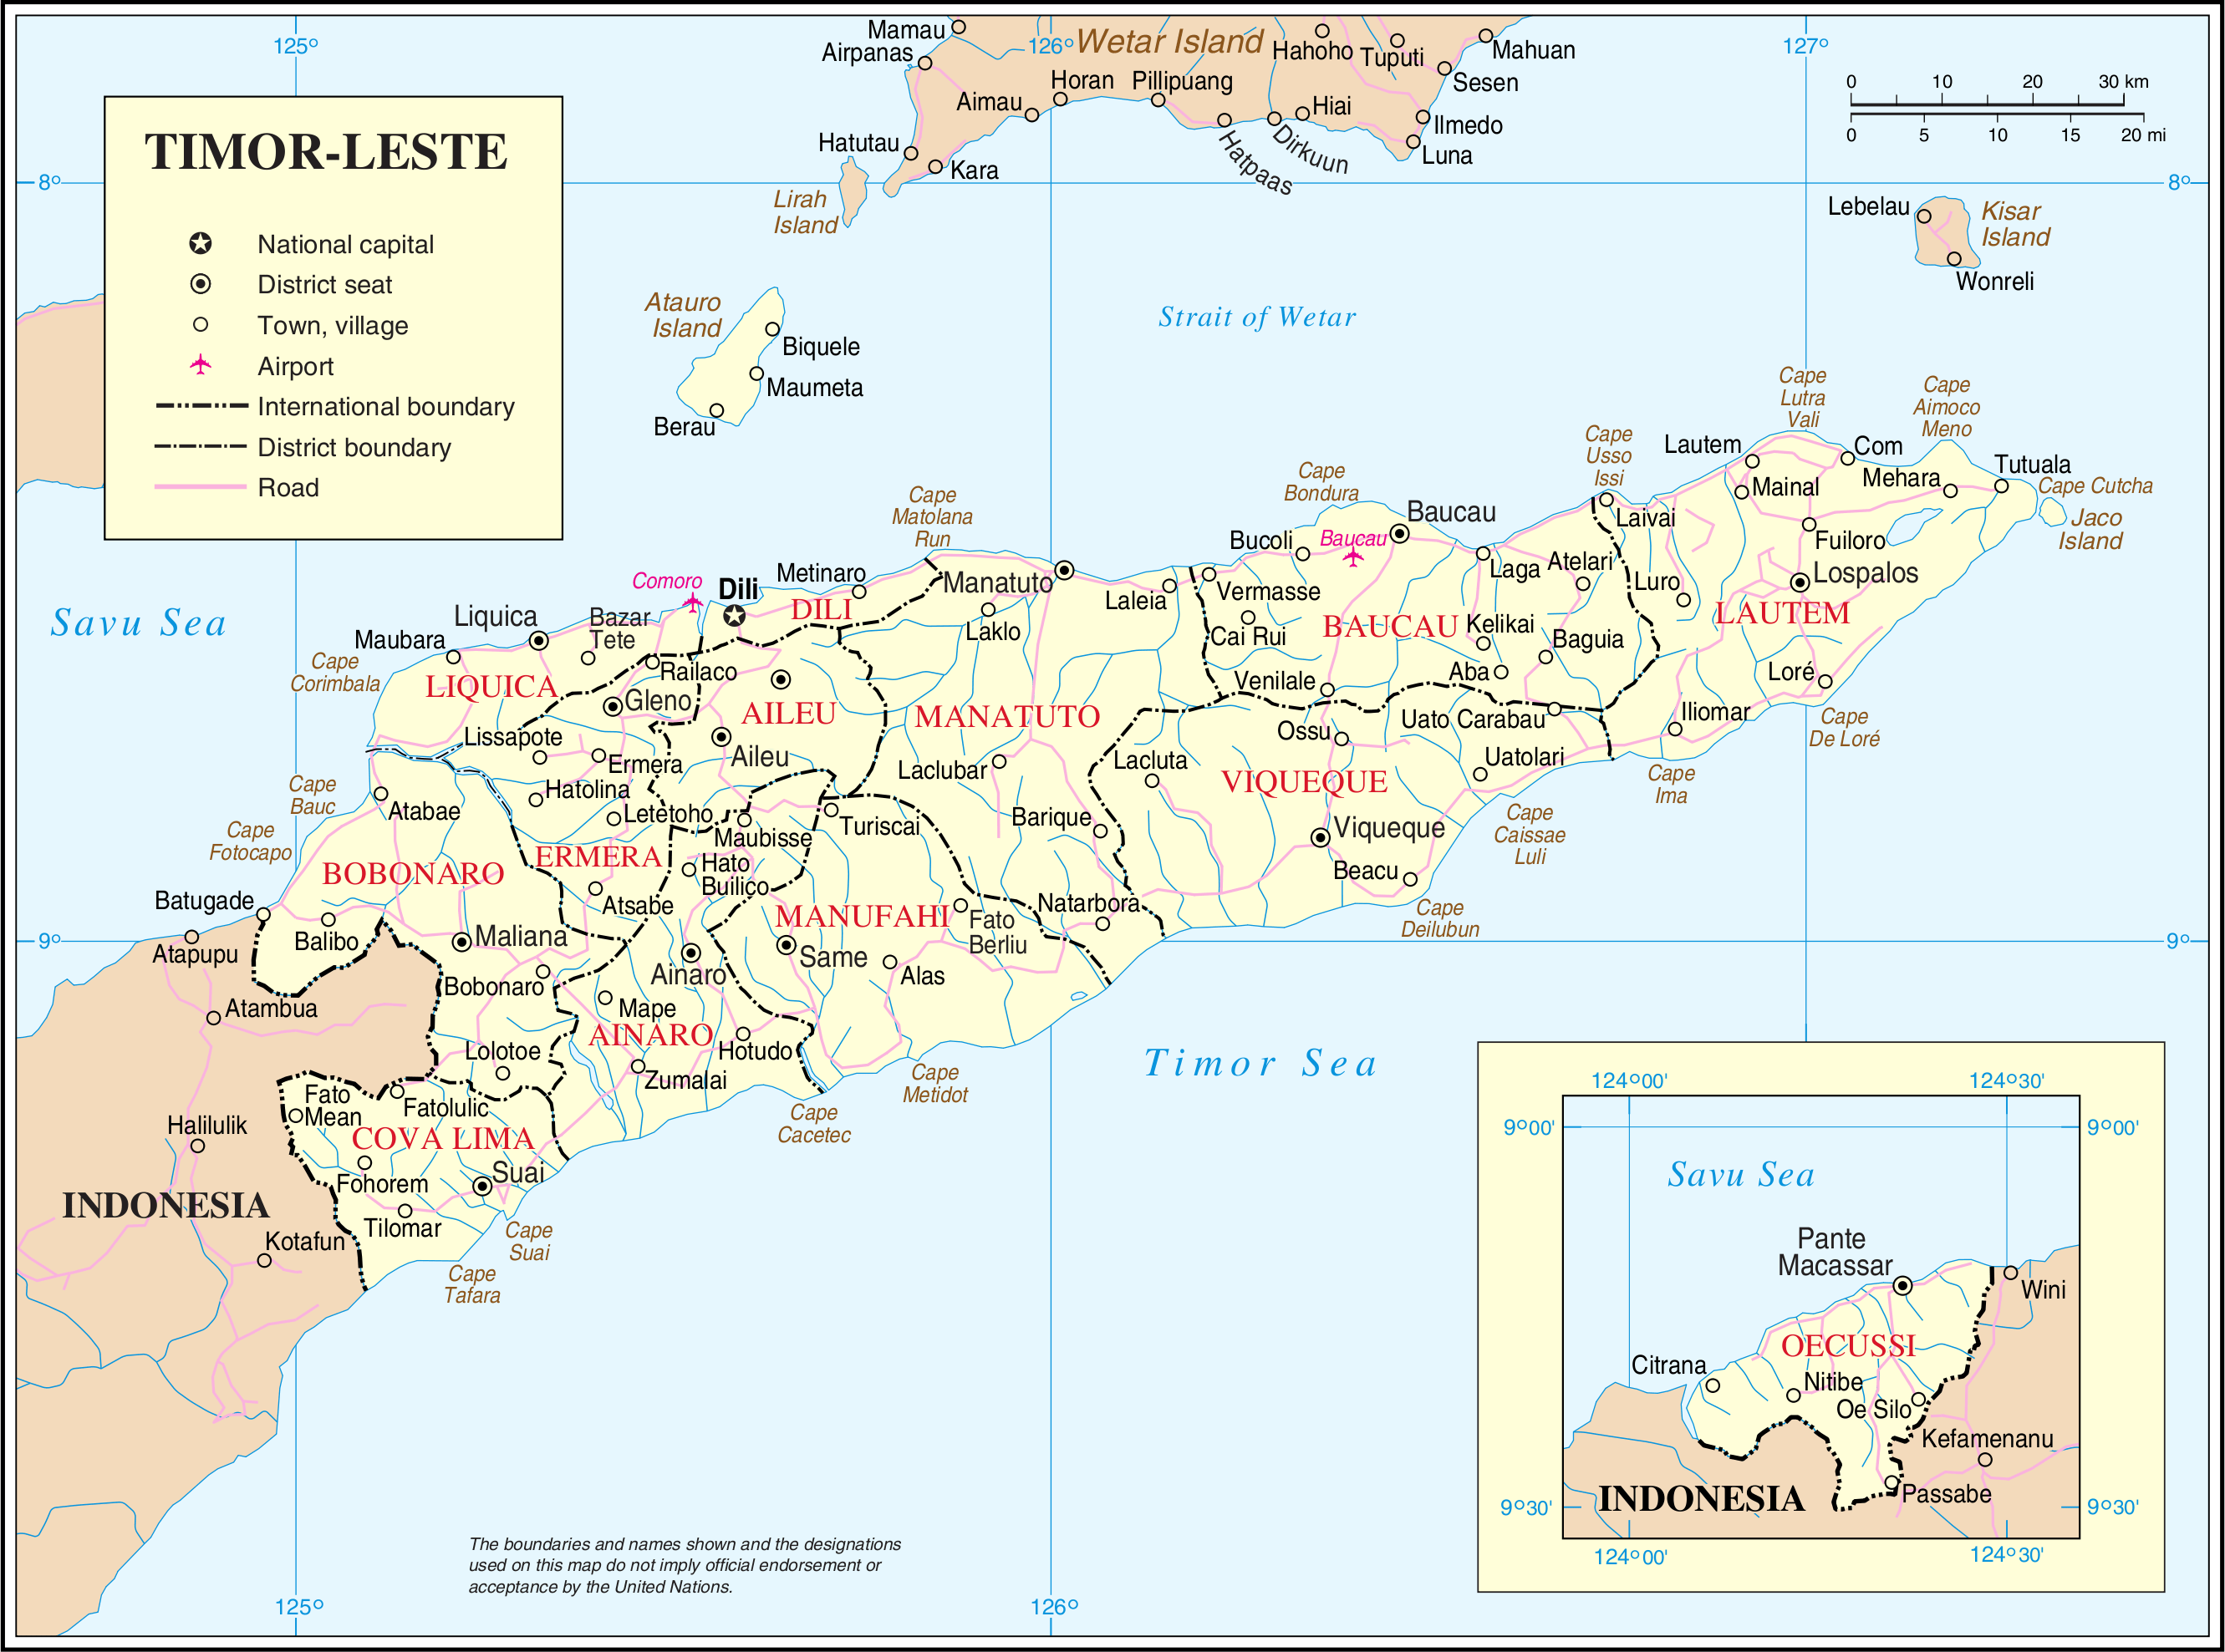 An enlargeable map of the Democratic Republic ...